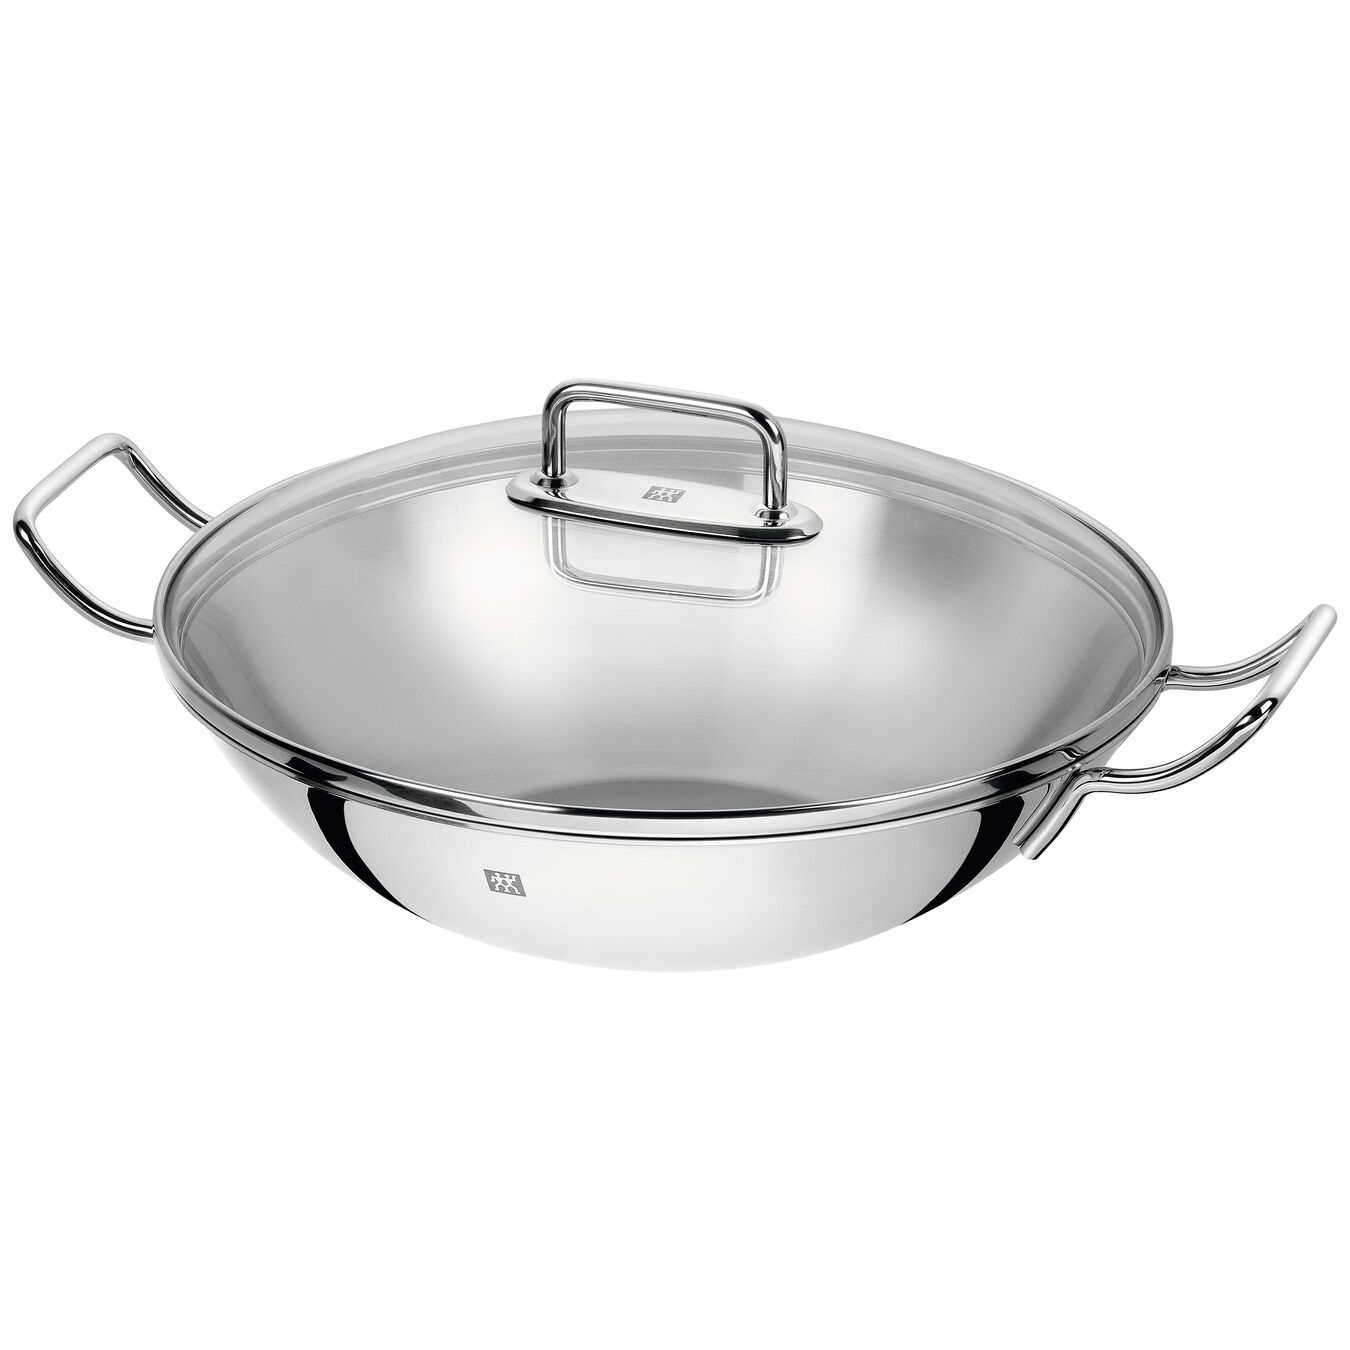 32 cm / 12.5 inch 18/10 Stainless Steel Wok With Steamer,,large 2